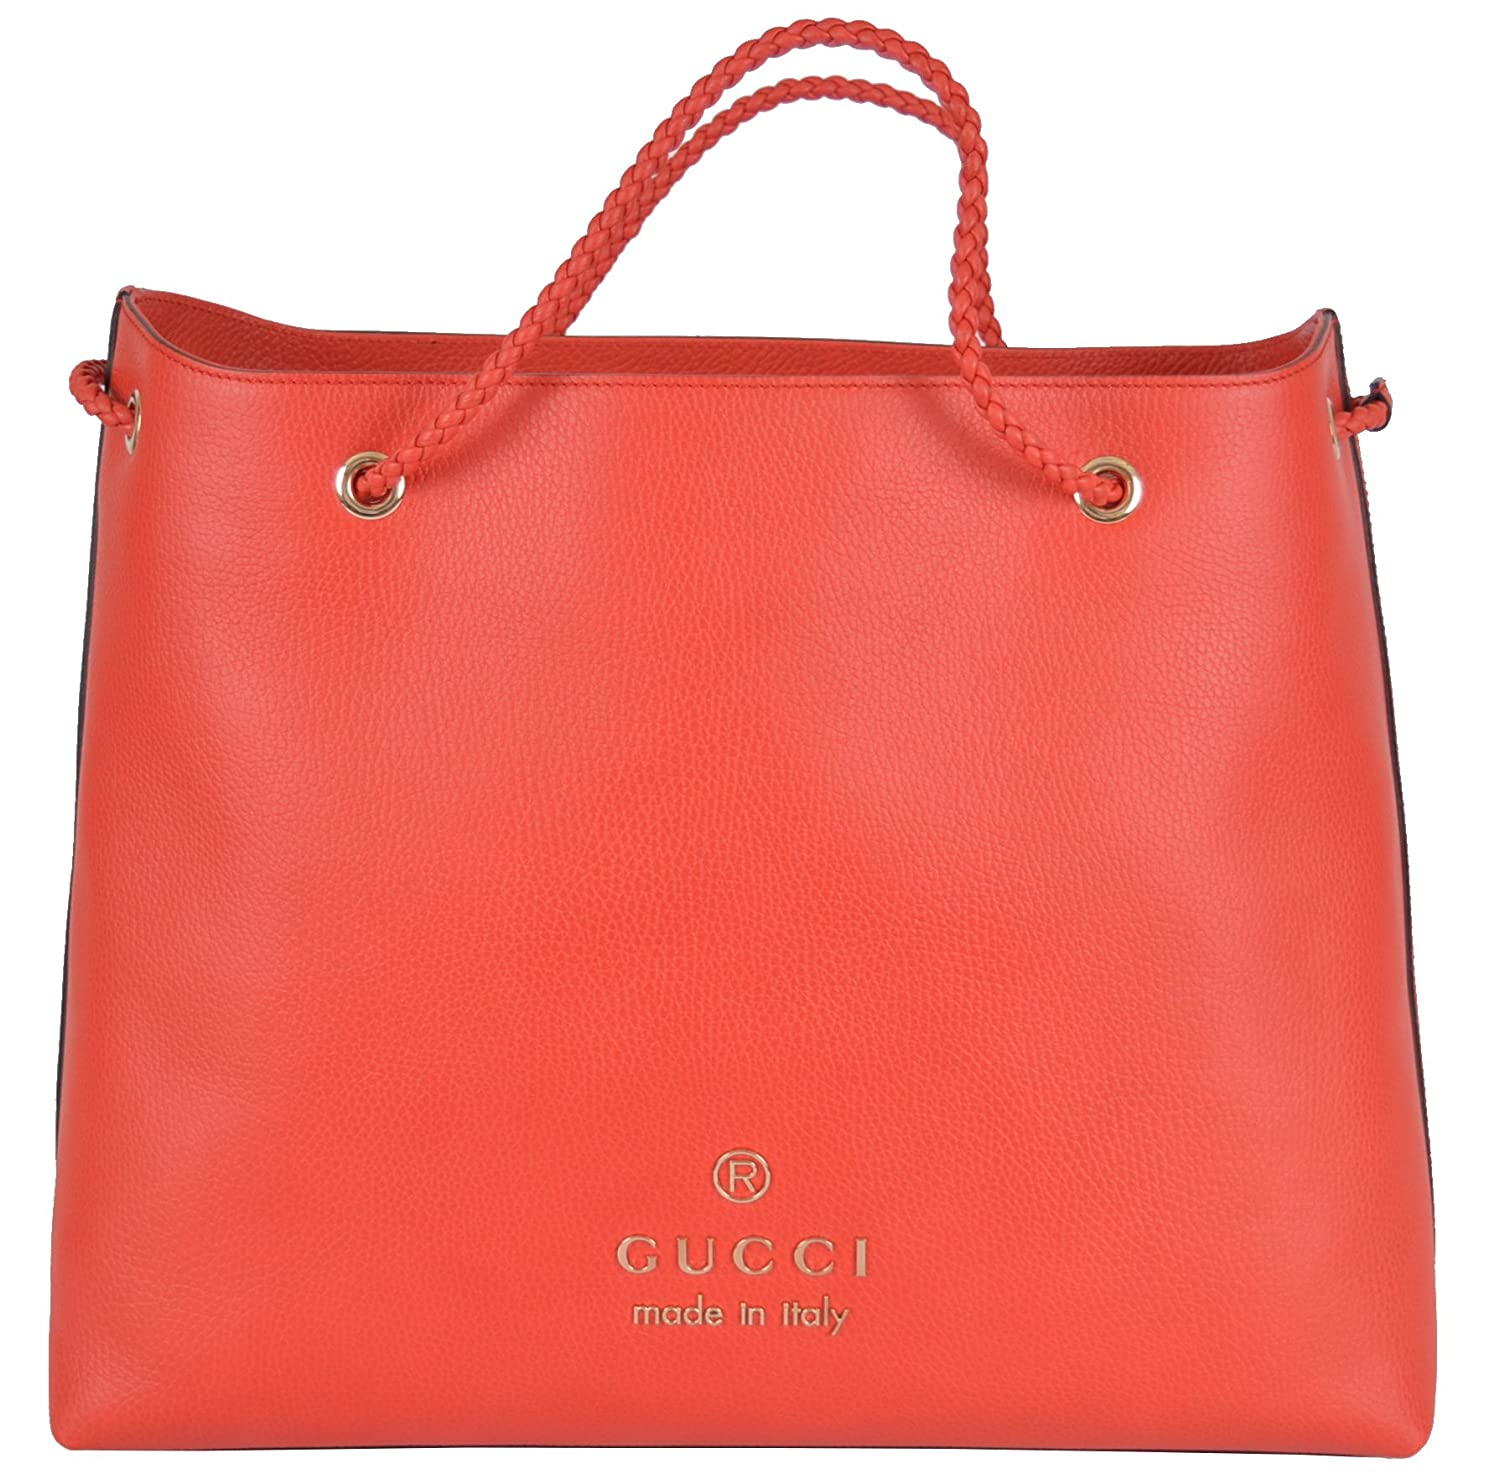 bfb1c1605f7 Amazon.com  Gucci Women s Coral Red Textured Leather Large Braided Handle  Tote Handbag  Clothing